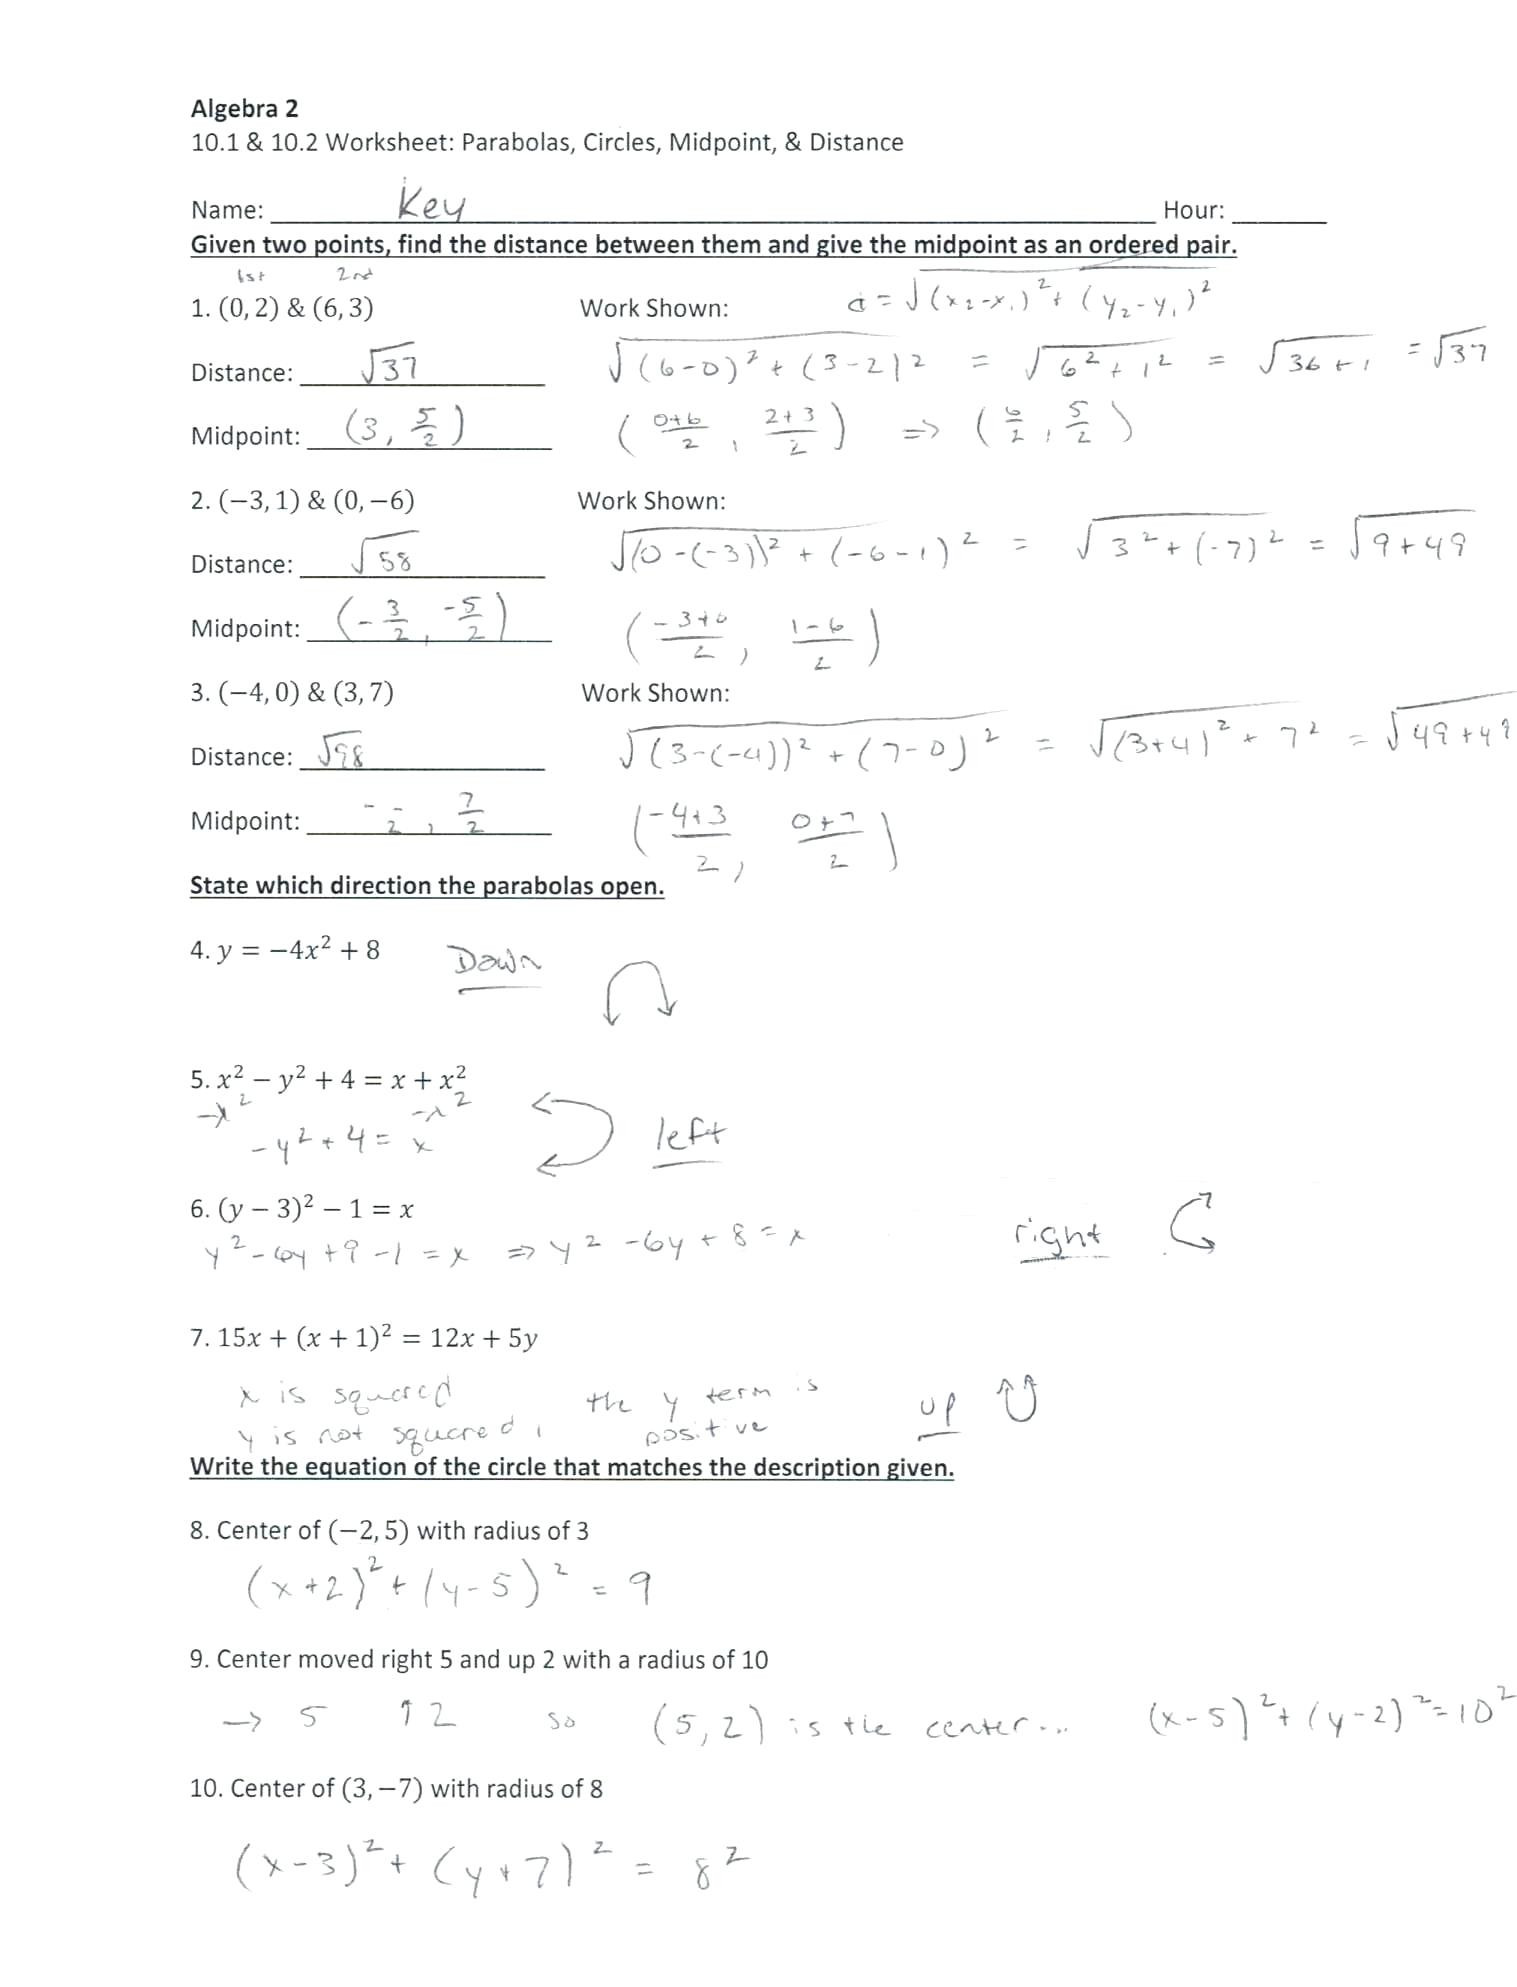 Midpoint and Distance Worksheet Midpoint and Distance Worksheet Answer Key Nidecmege